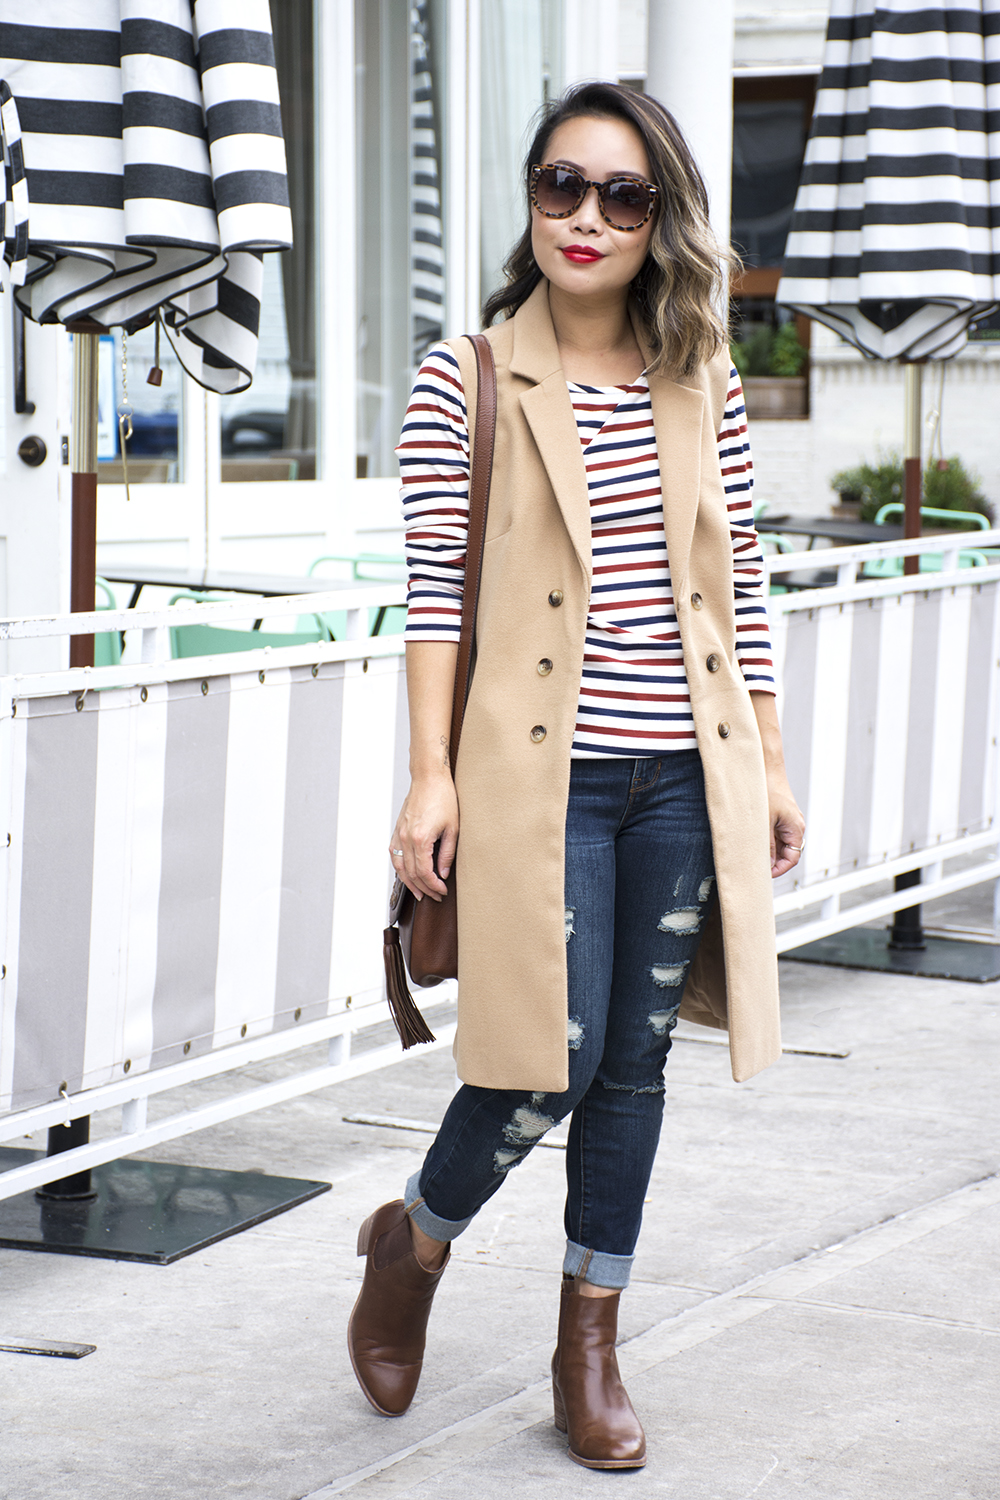 05nyc-newyork-city-stripes-travel-fashion-style